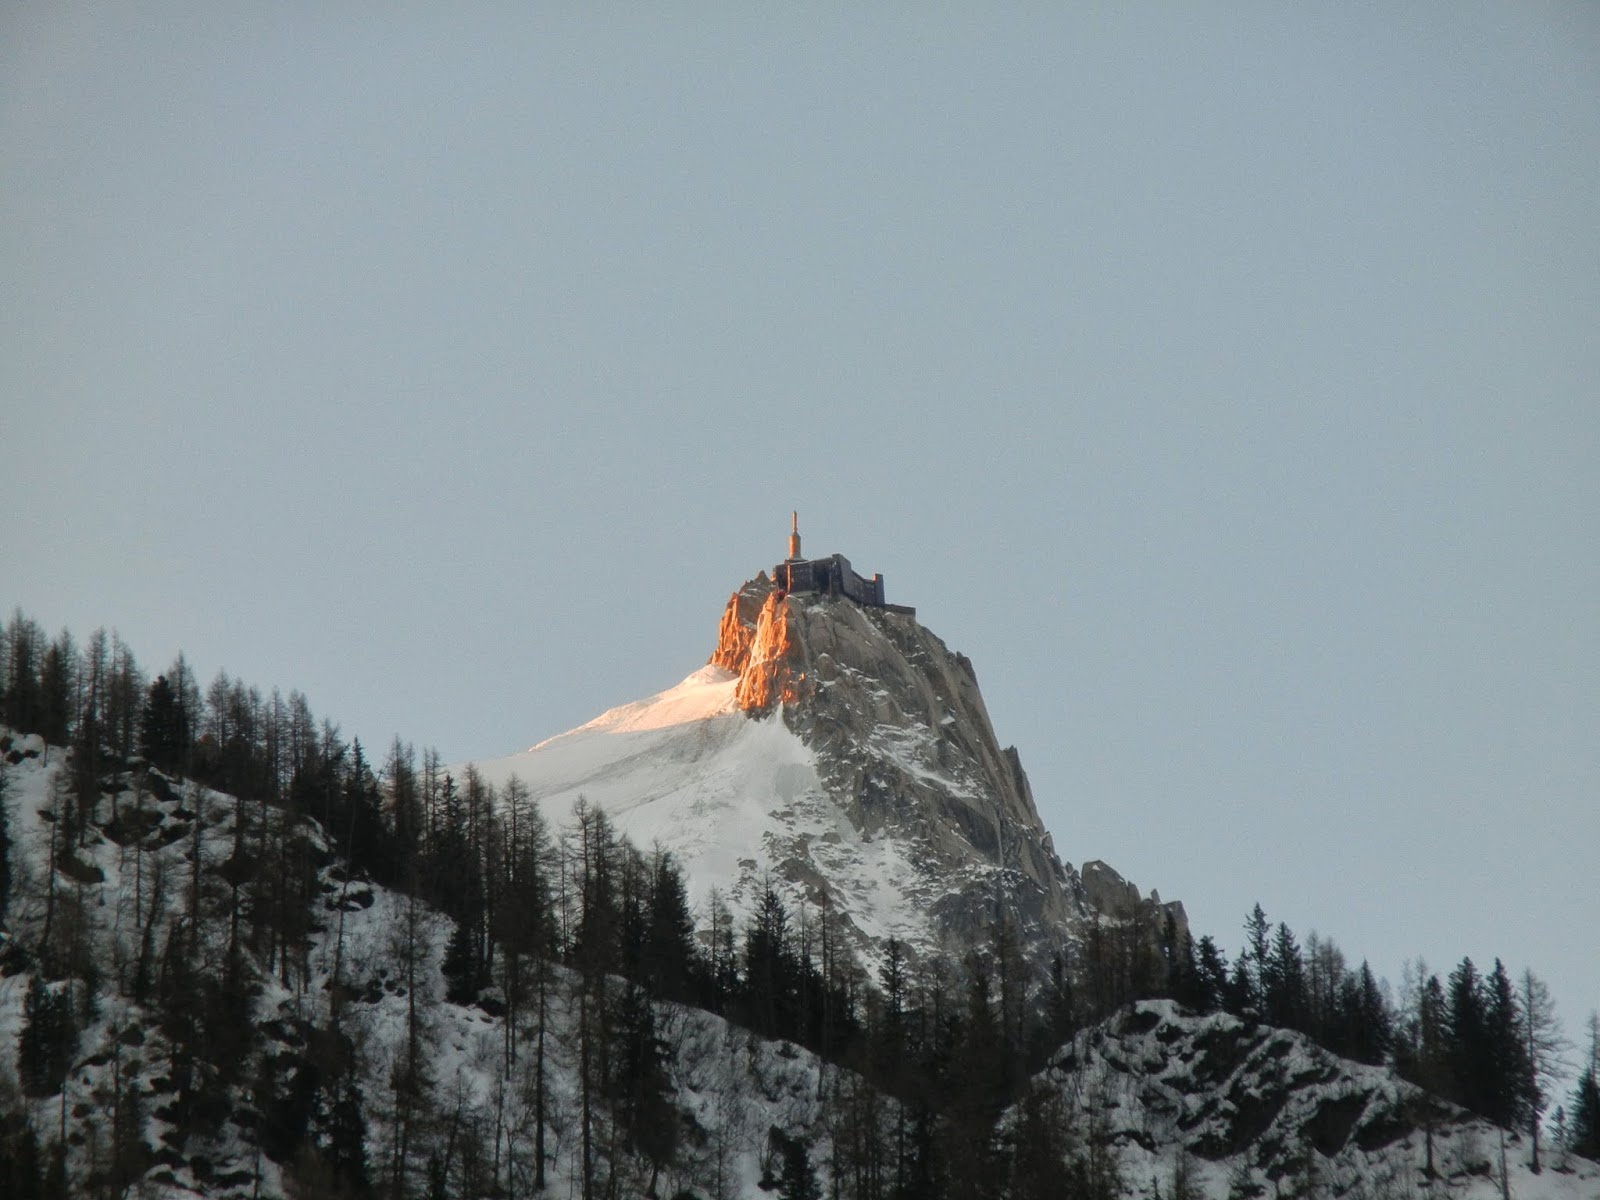 Aiguille de Midi in Chamonix early morning